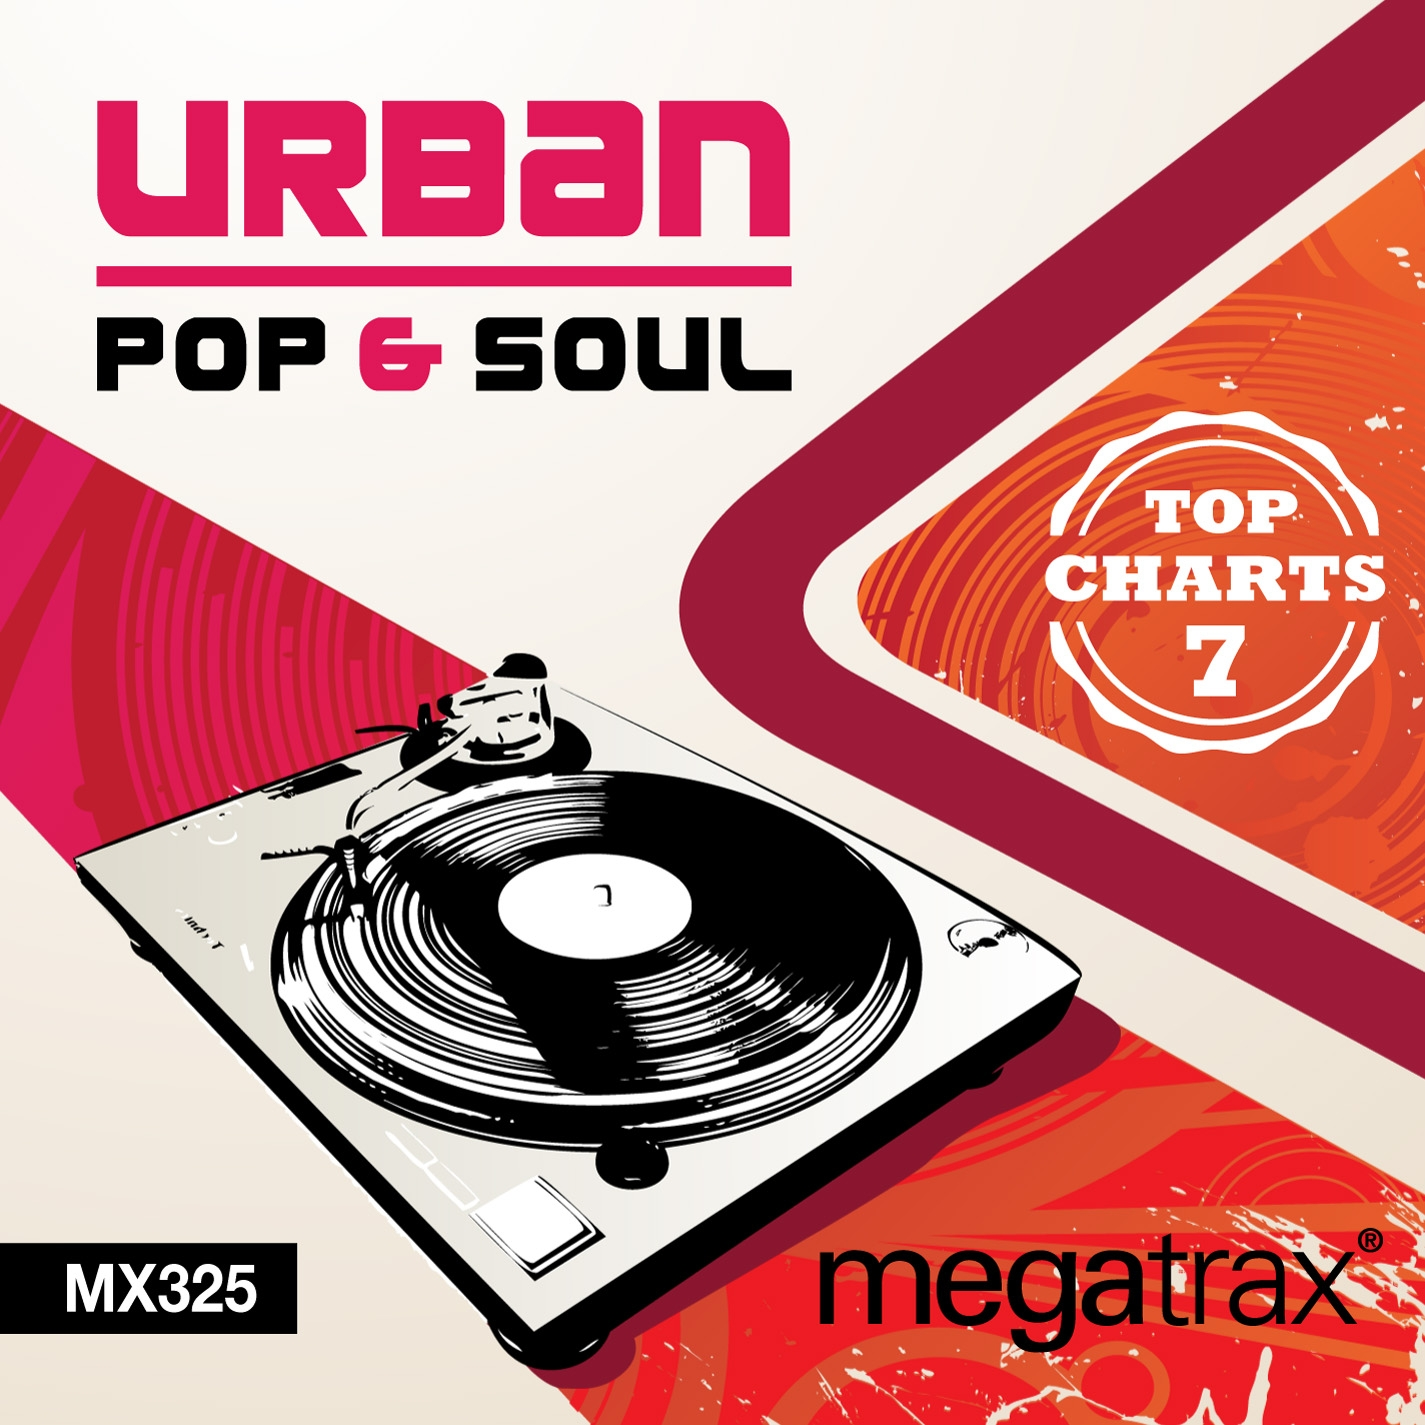 Top Charts 7 : Urban Pop And Soul